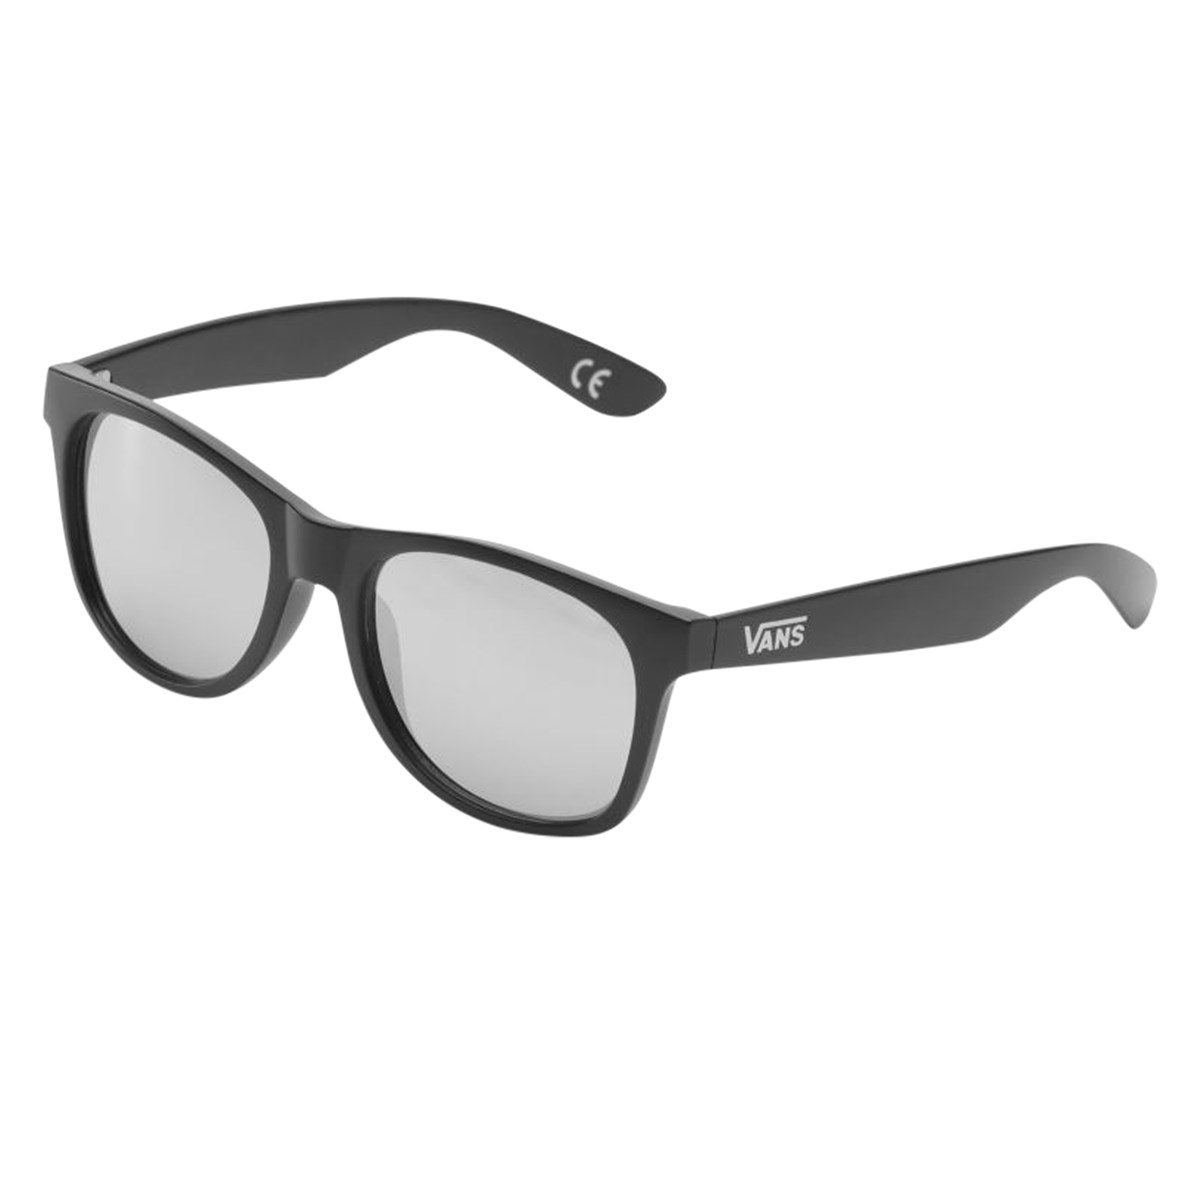 Spicoli 4 Shades Sunglasses in Black